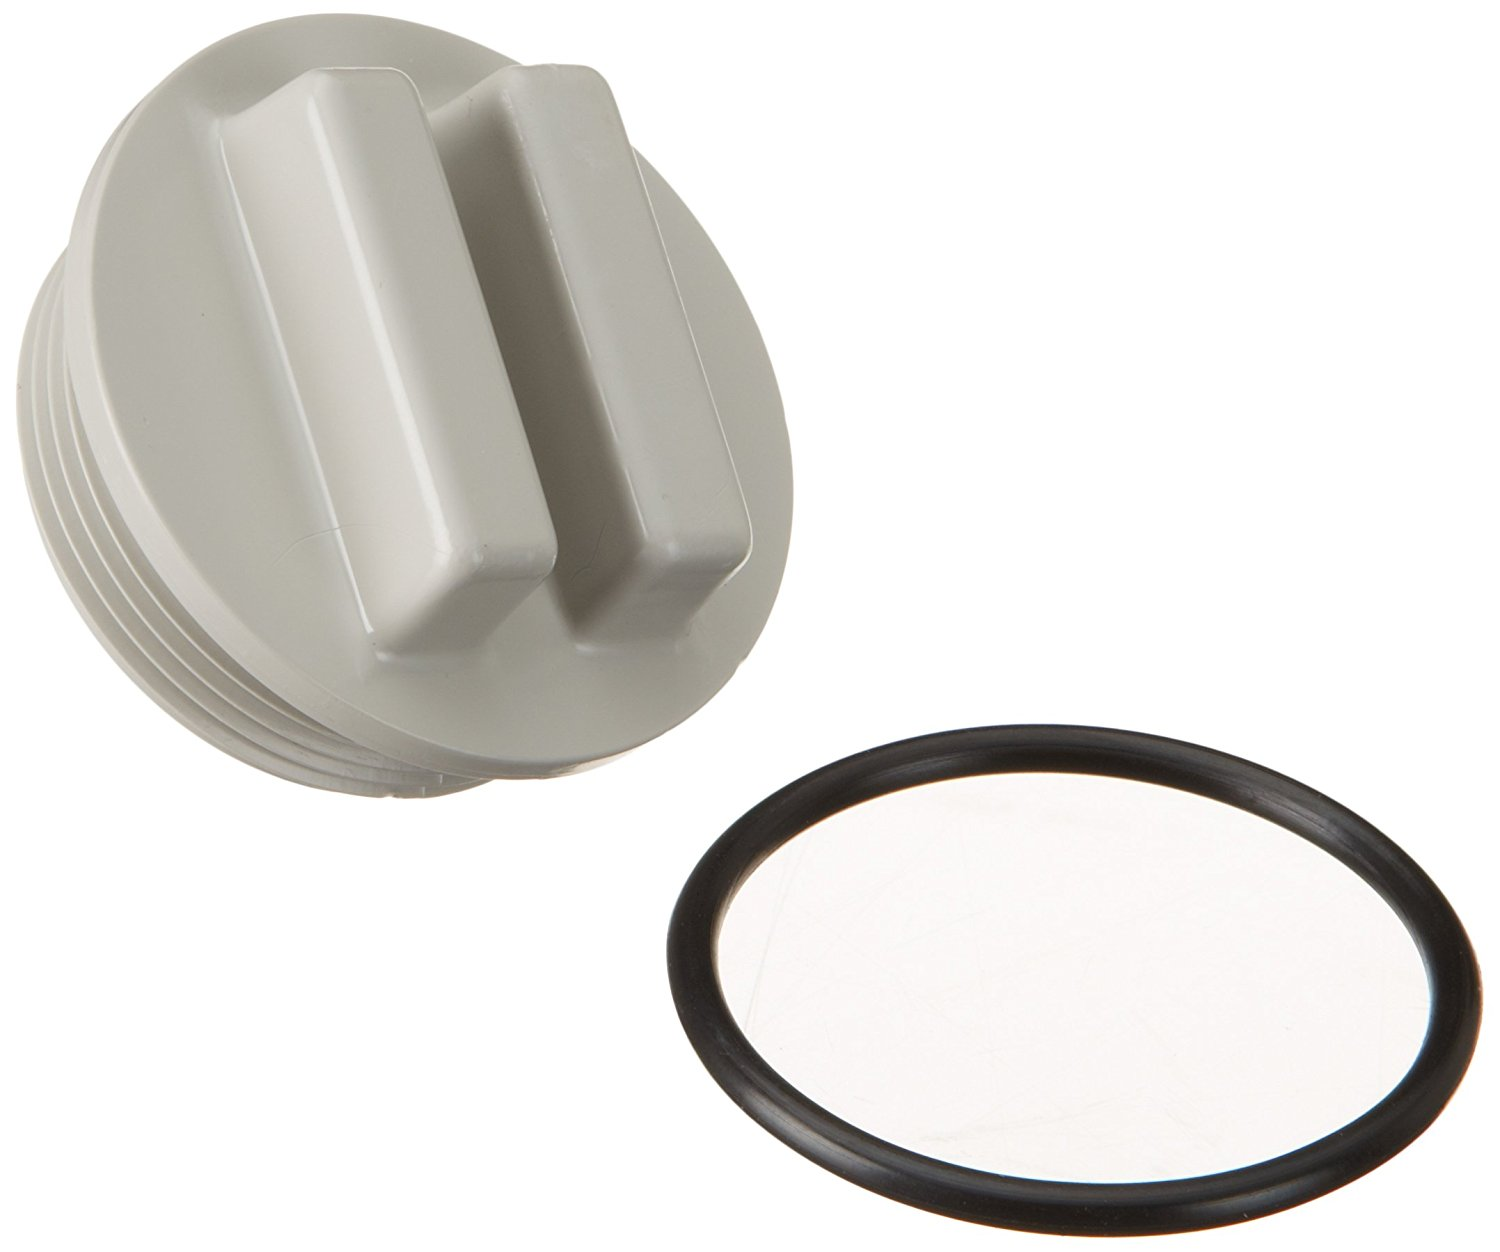 Hayward SP1022CGR 1-1/2-Inch MIP Gray Concrete Pool Drain Plug with O-Ring